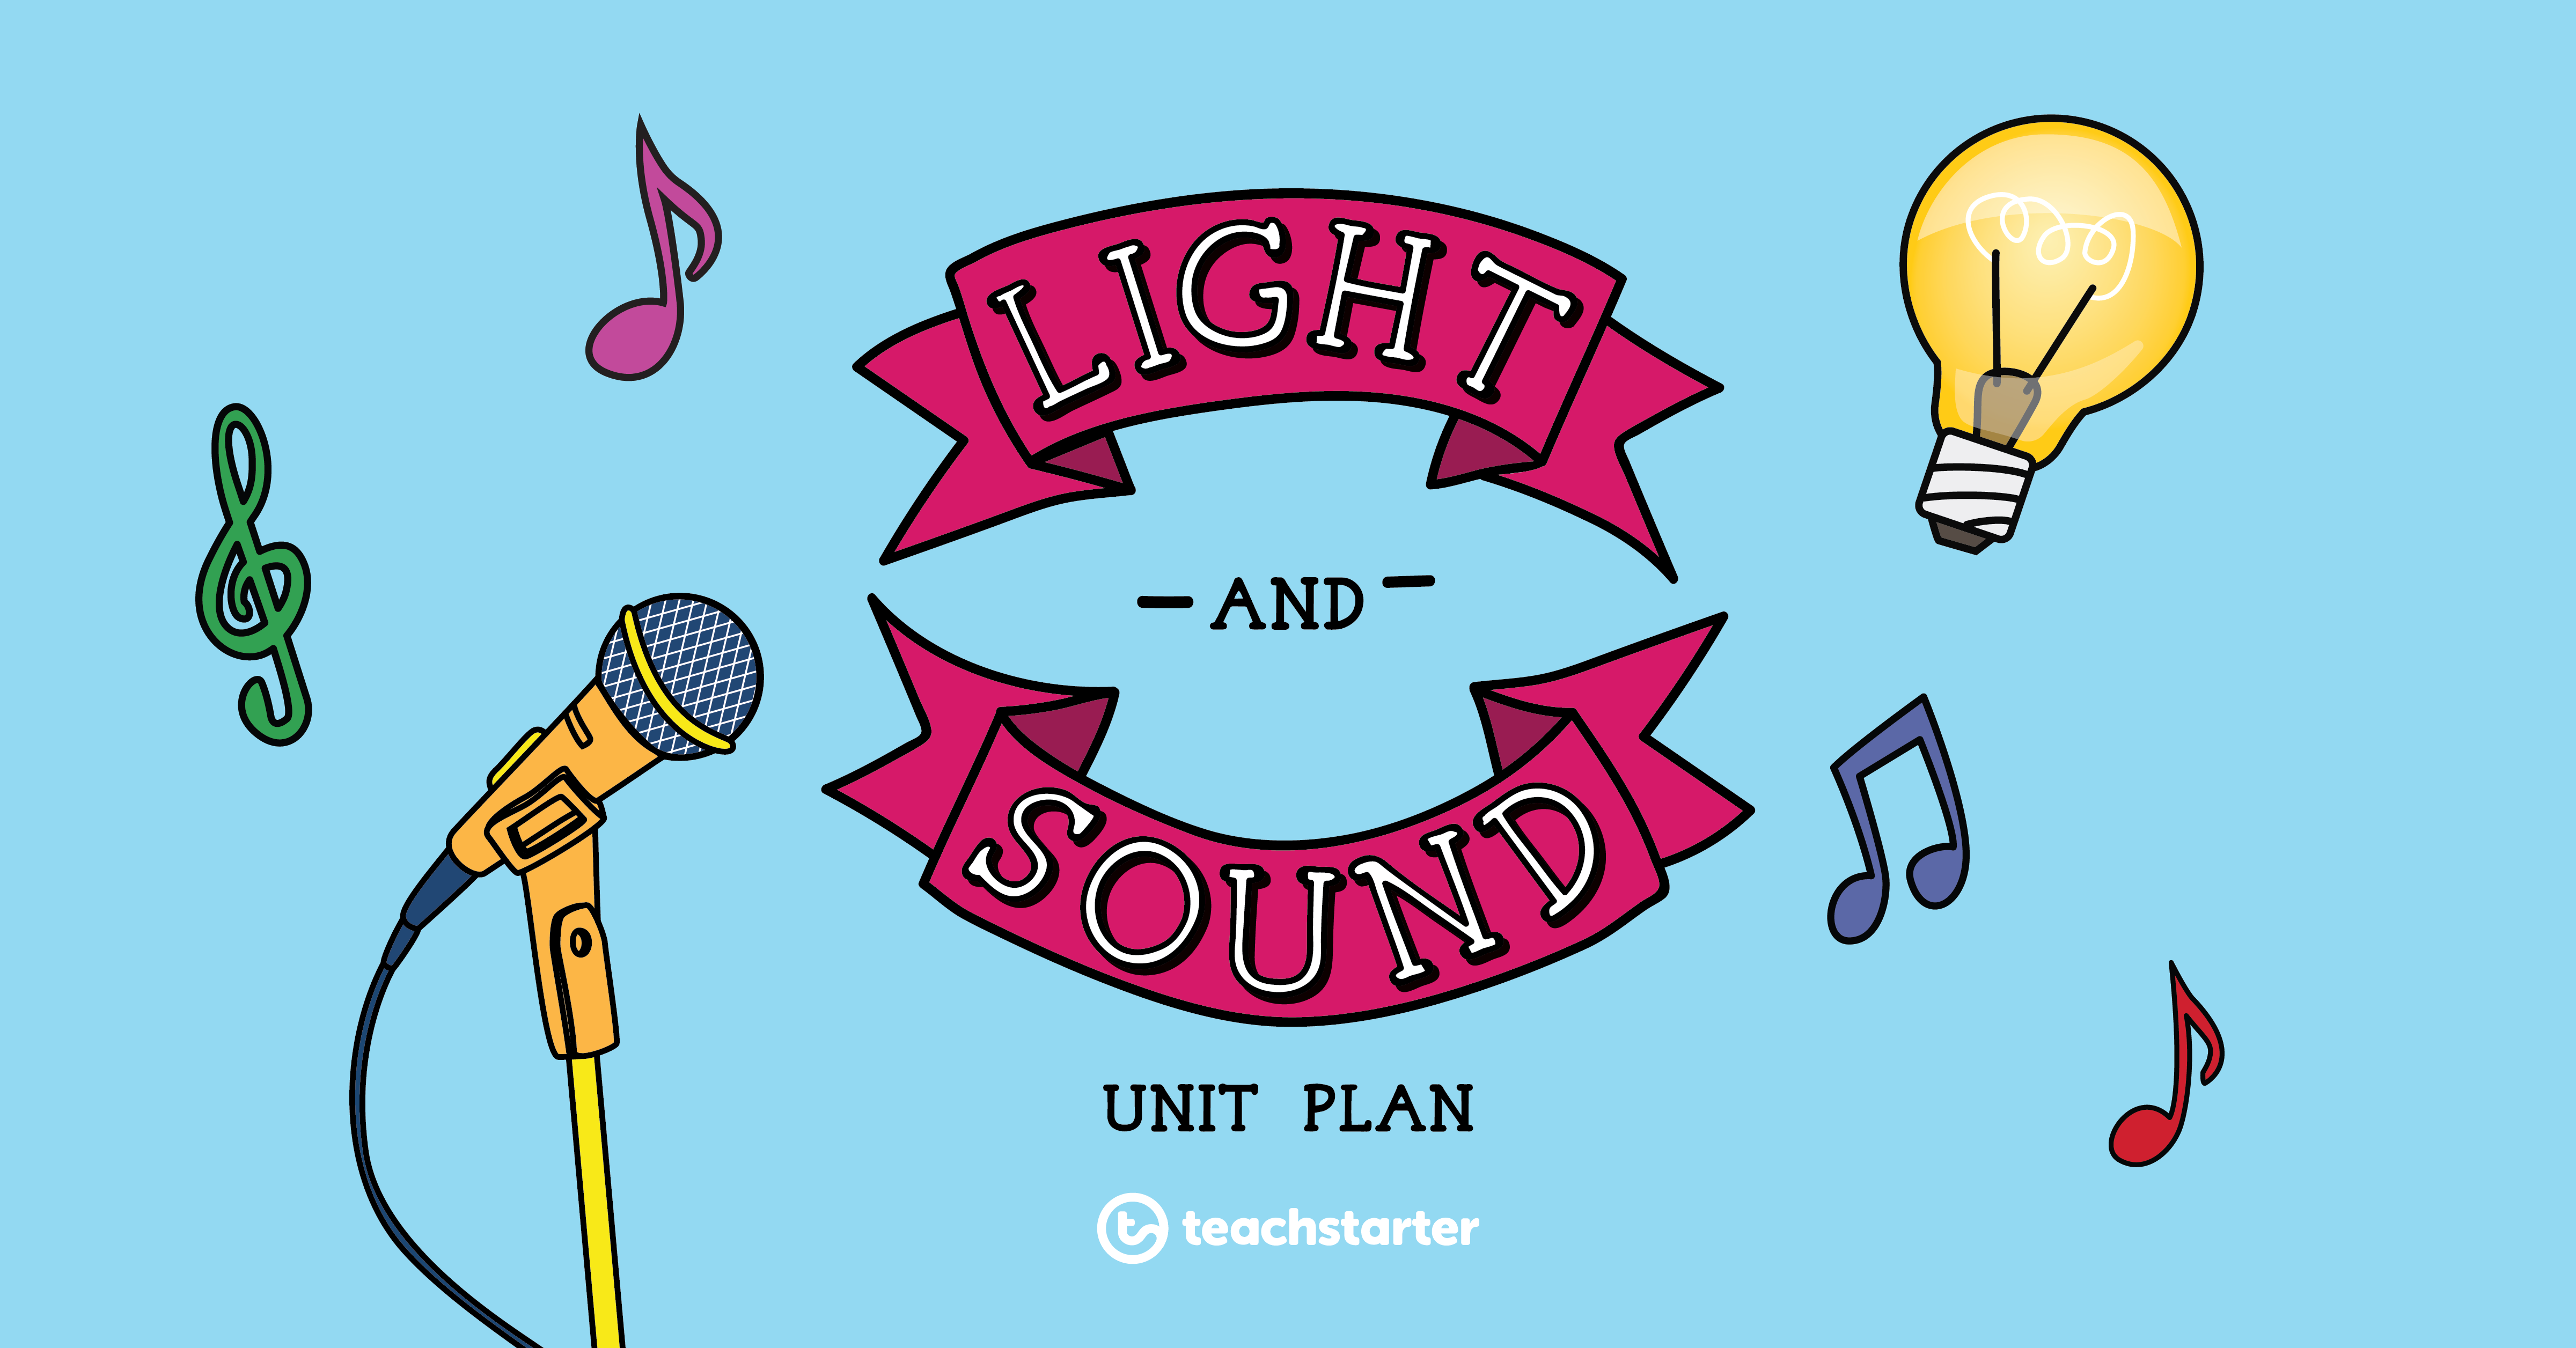 Light and sound science activities for the classroom